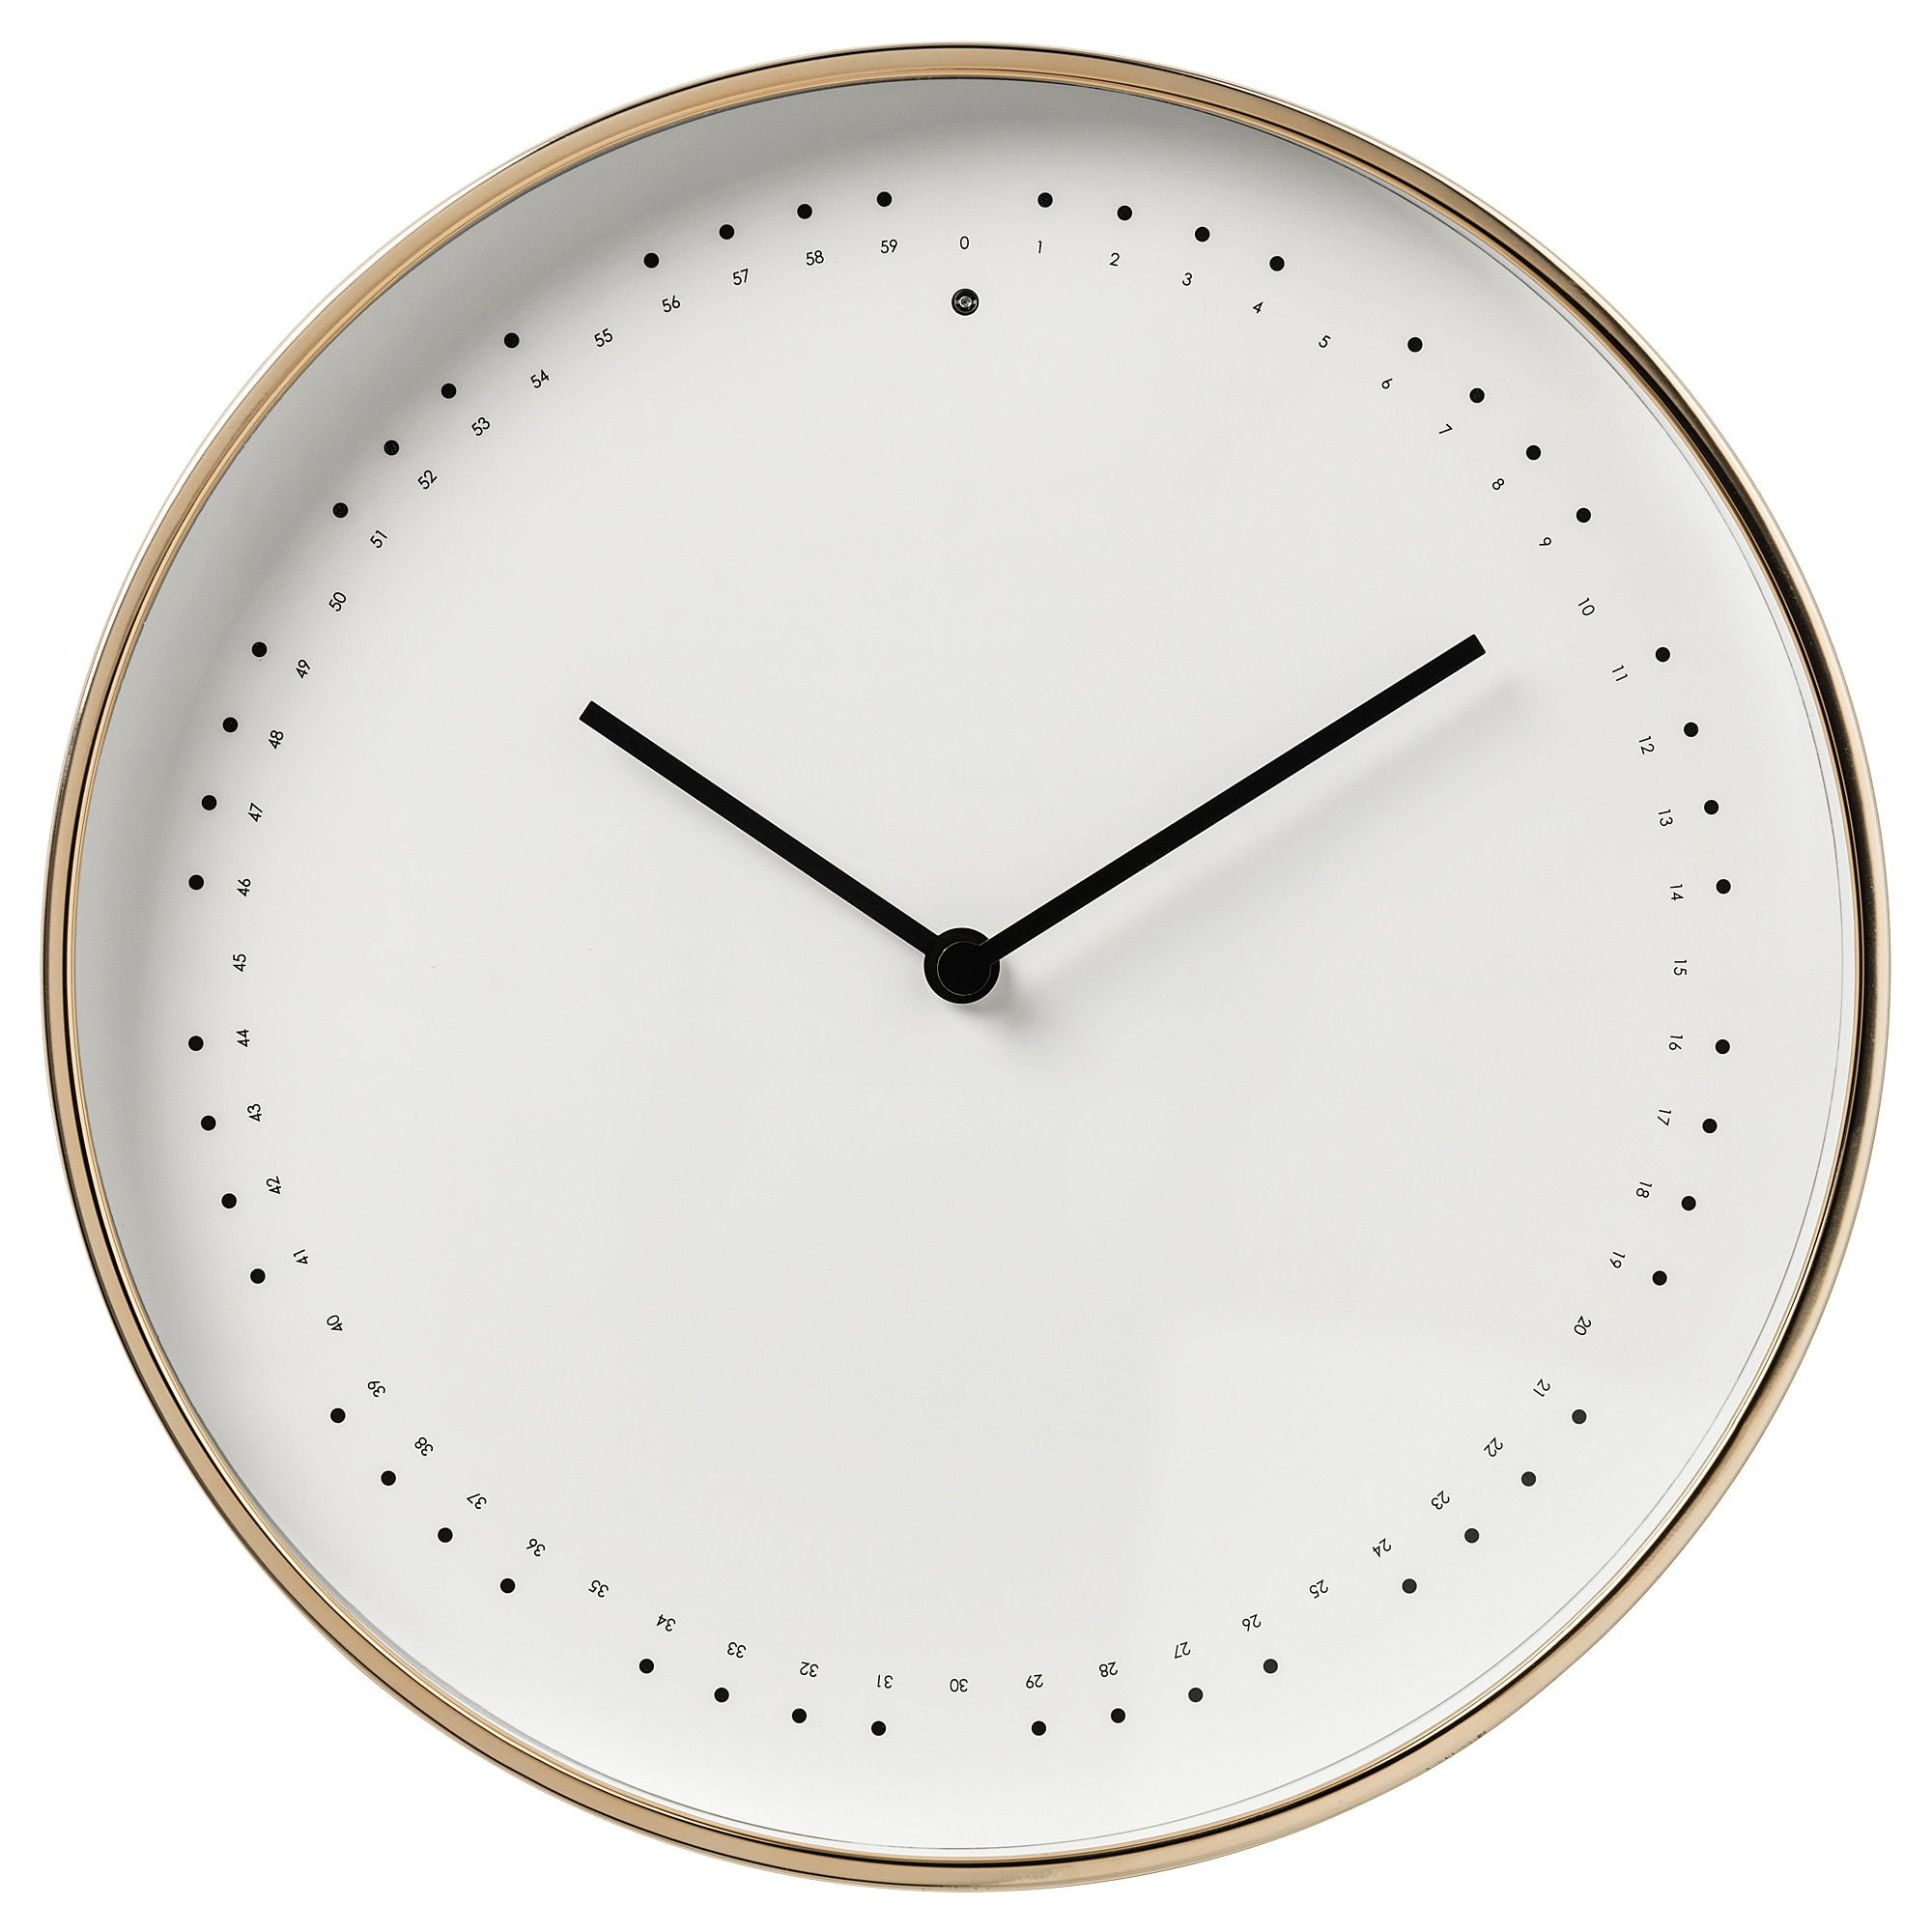 Panorera Wall Clock Ikea In 2020 Wall Clock Ikea Wall Clock Ikea Clock